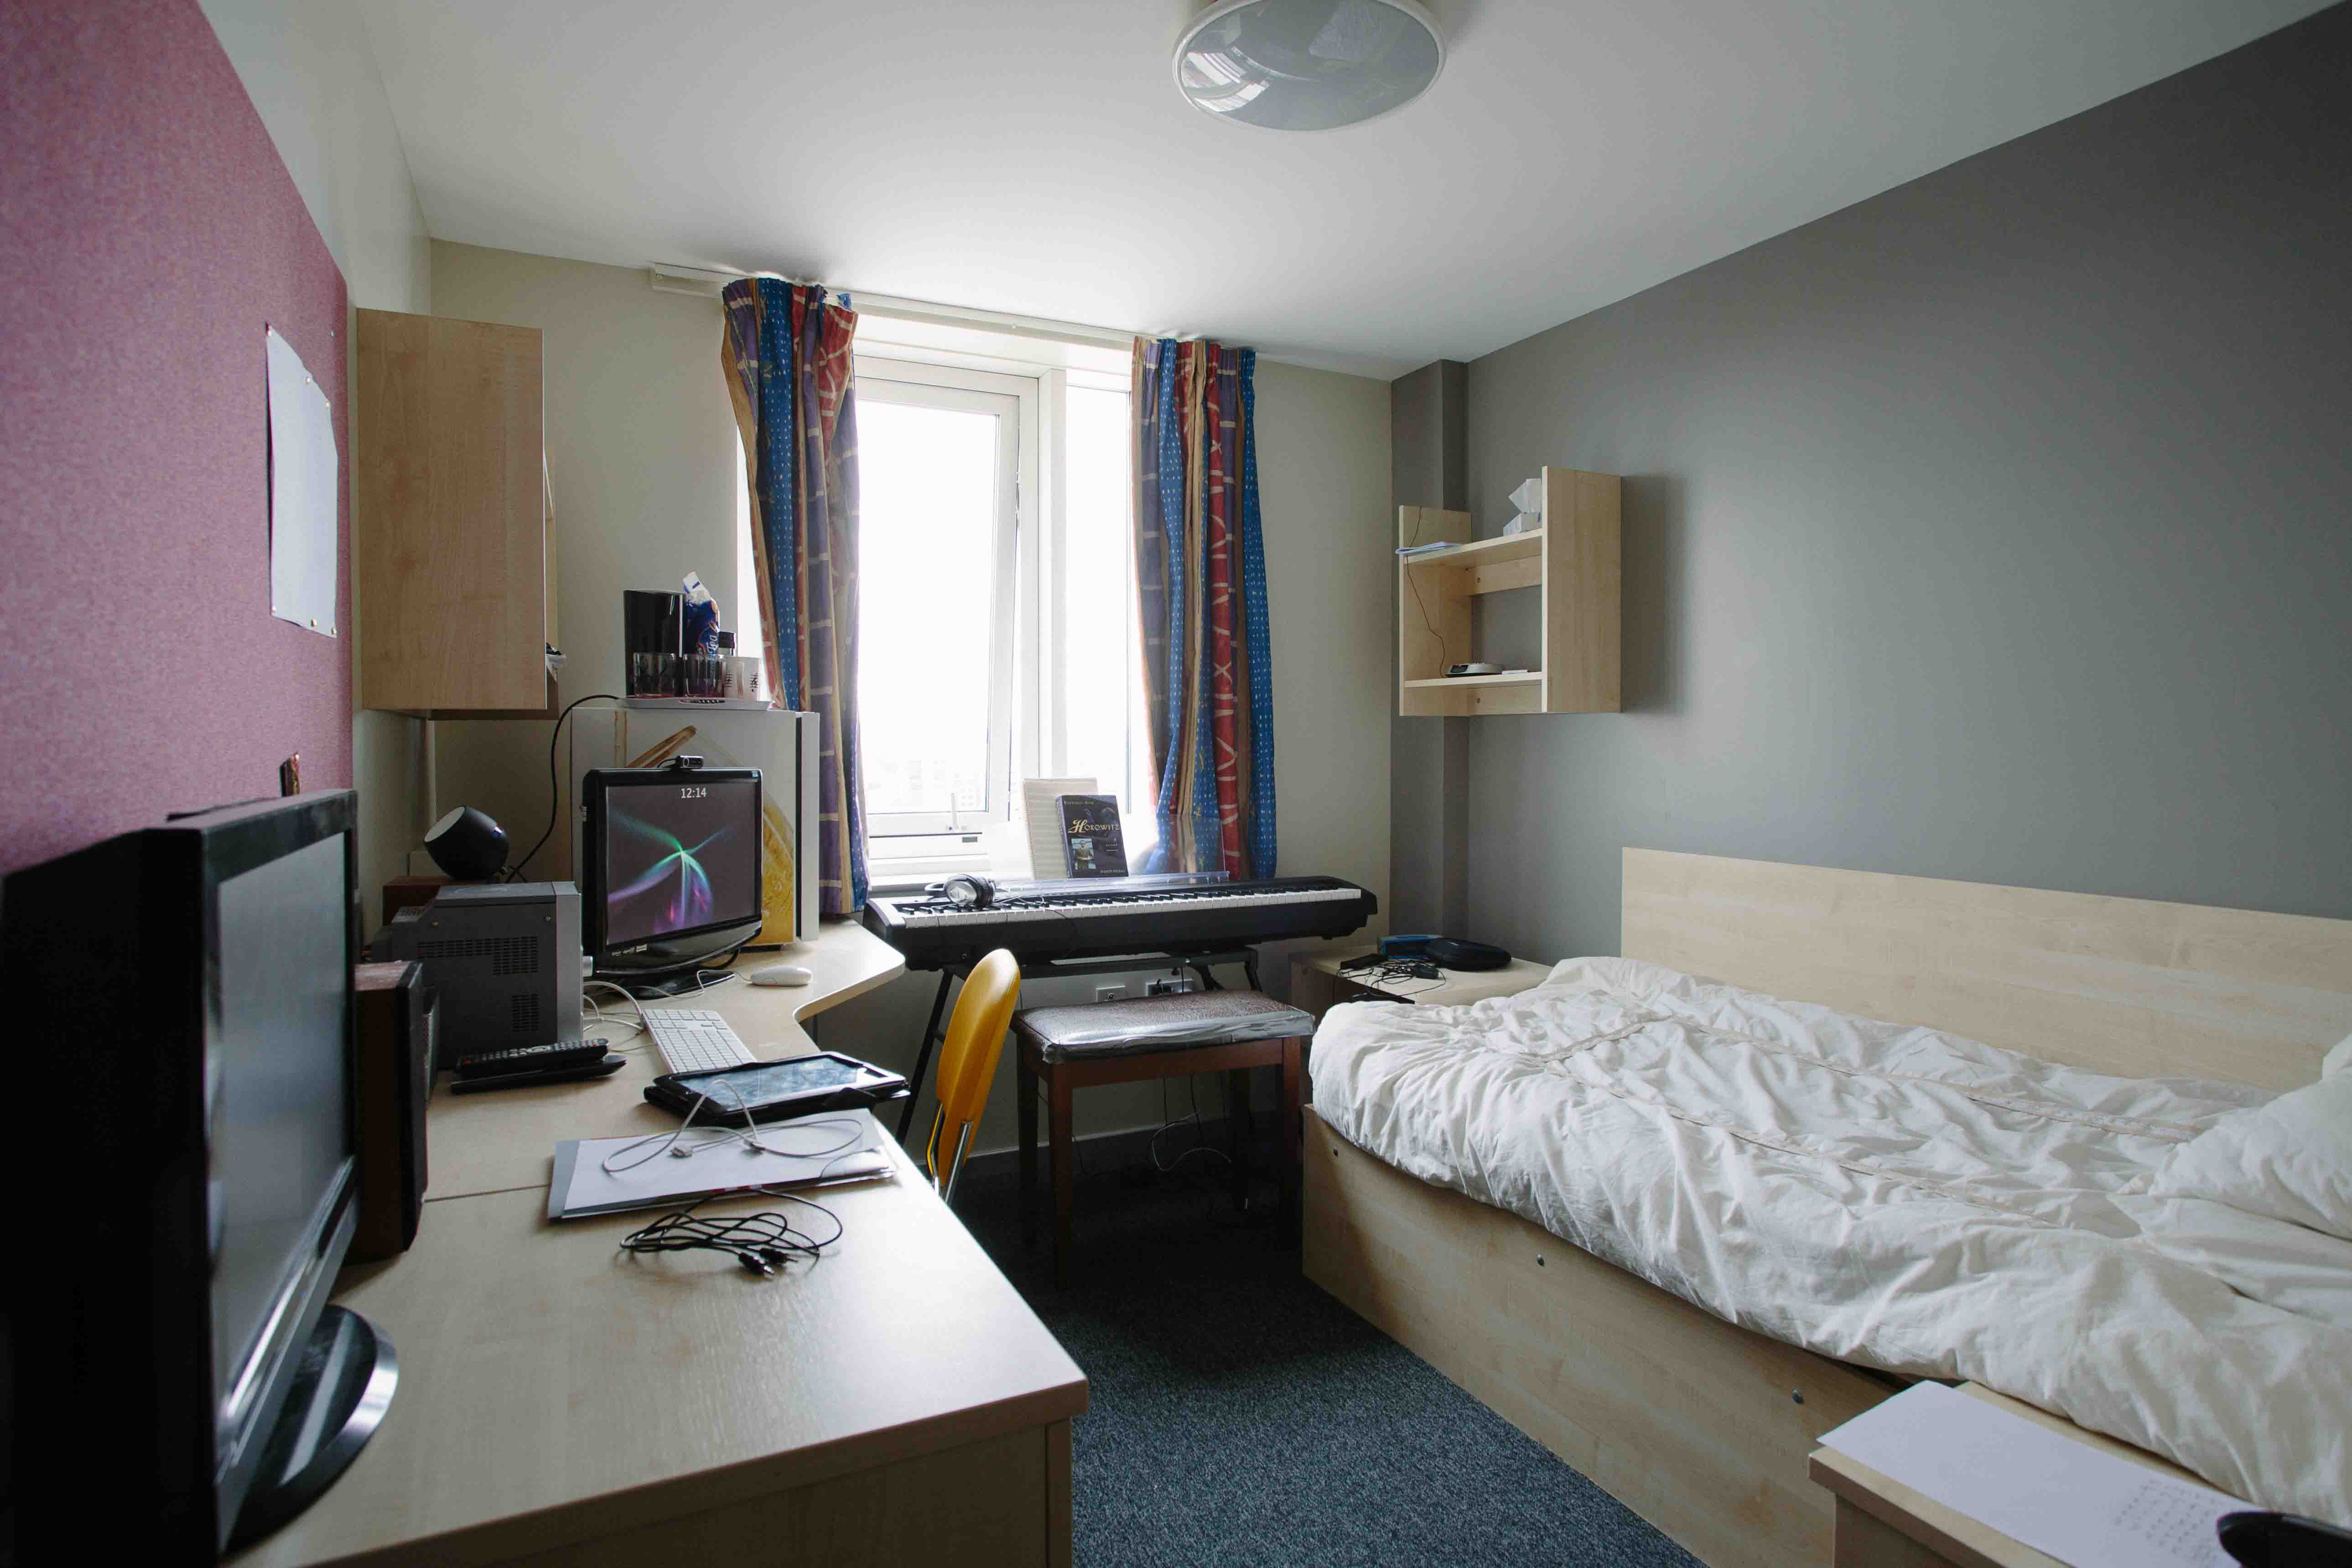 university of leeds accommodation application